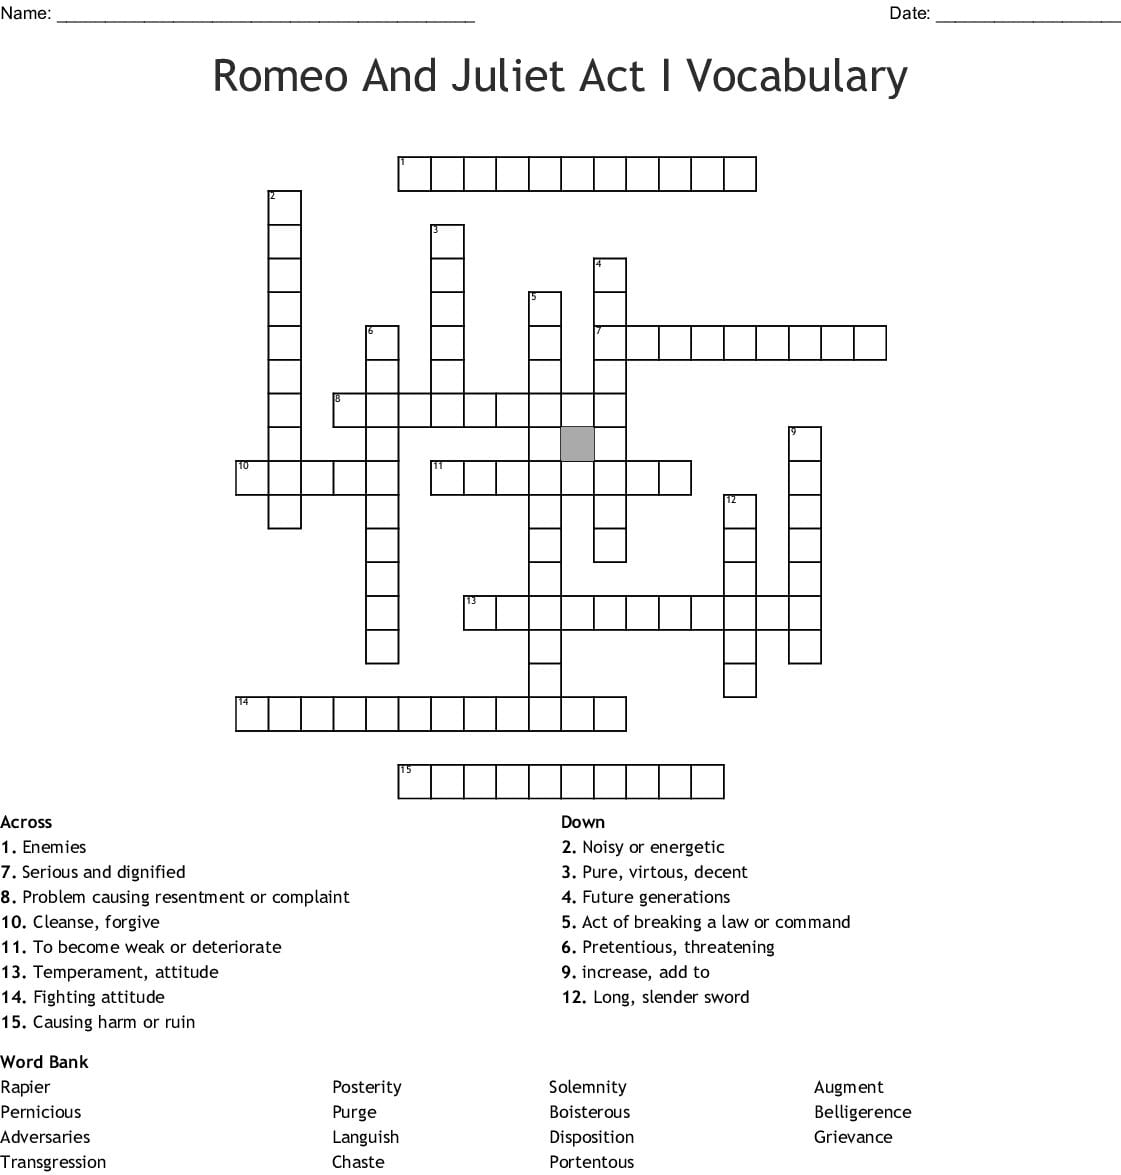 Romeo And Juliet Act I Vocabulary Crossword Word